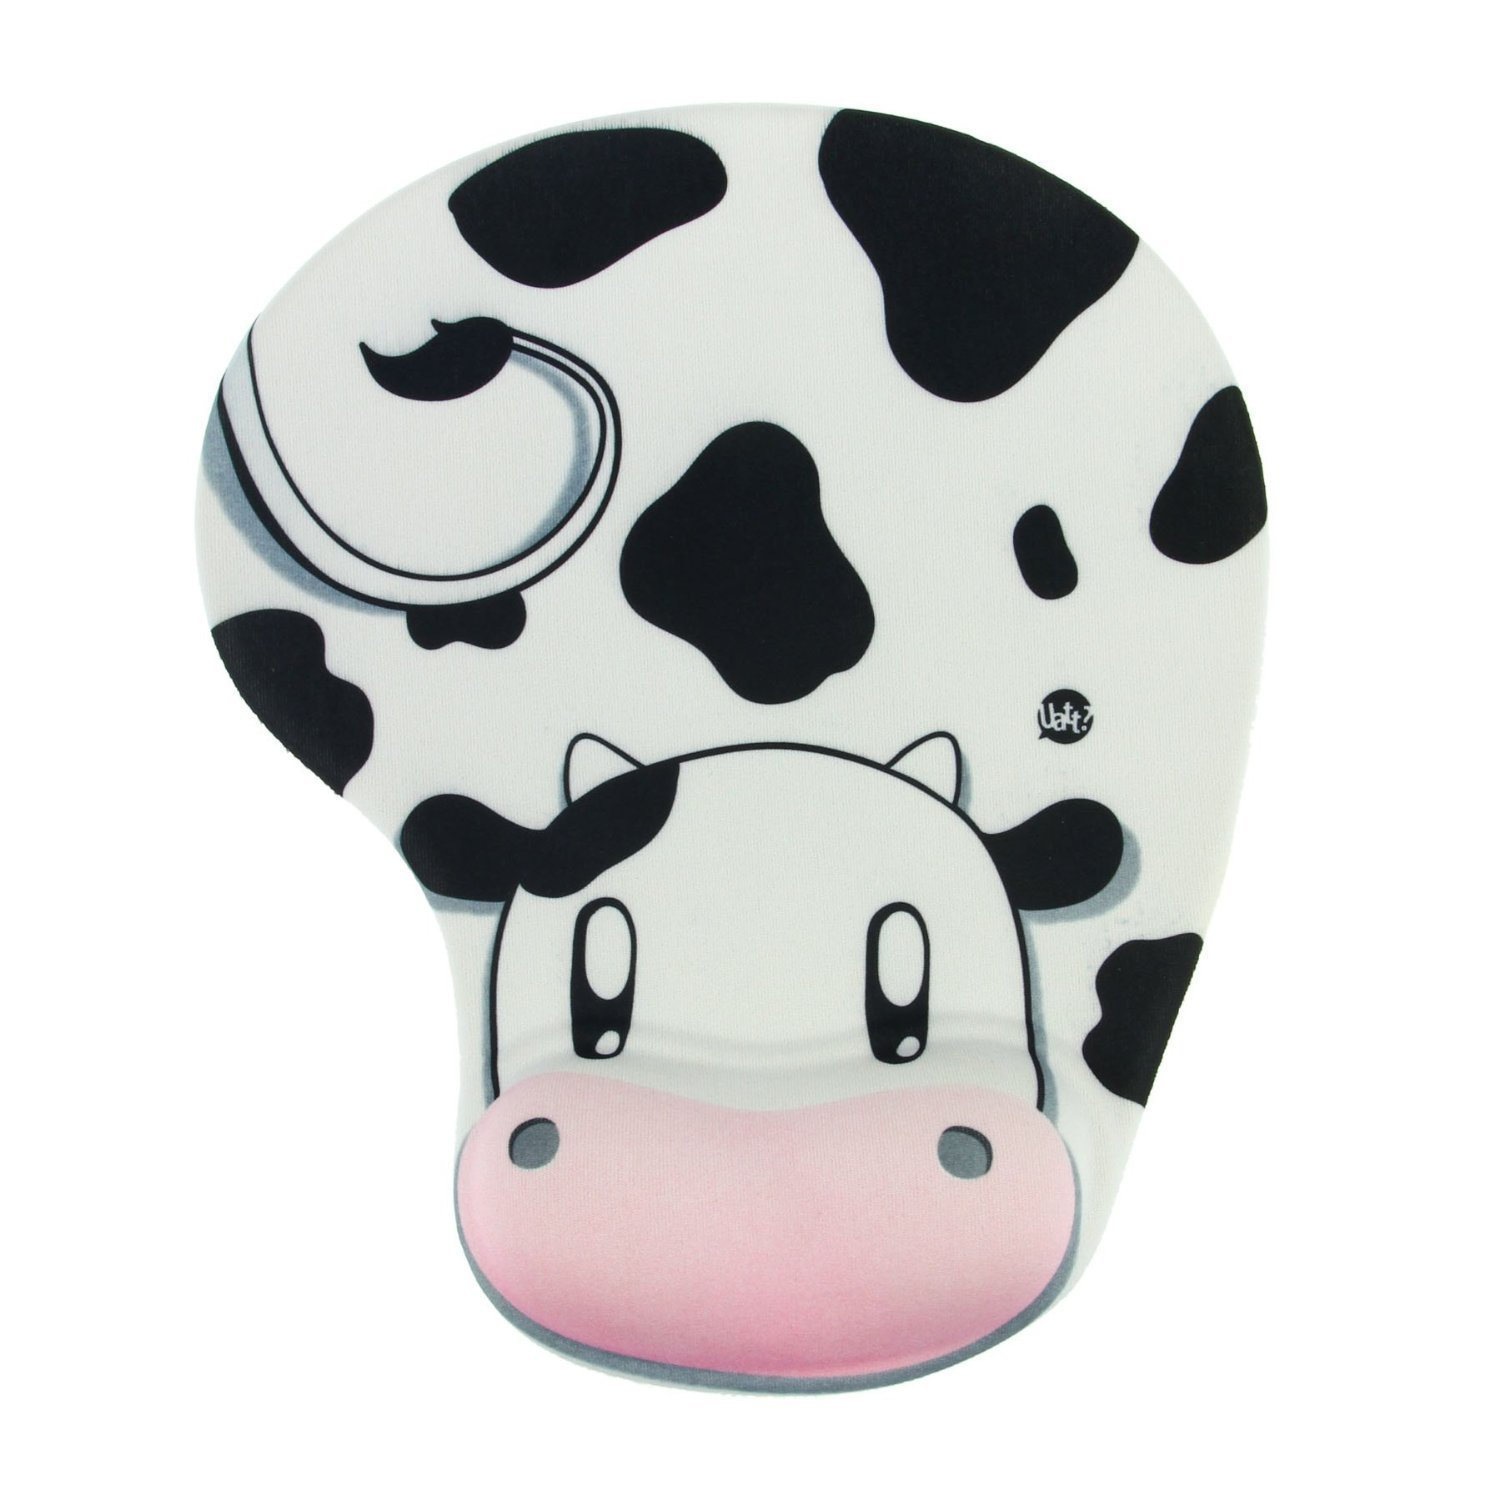 Onwon High Quality Cartoon Wrist protected Personalized Computer Decoration Gel Wrist Rest Mouse Pad Ergonomic Design Memory Foam Mouse Pad Gel Mouse Pad/Wrist Rest(Cow Style)